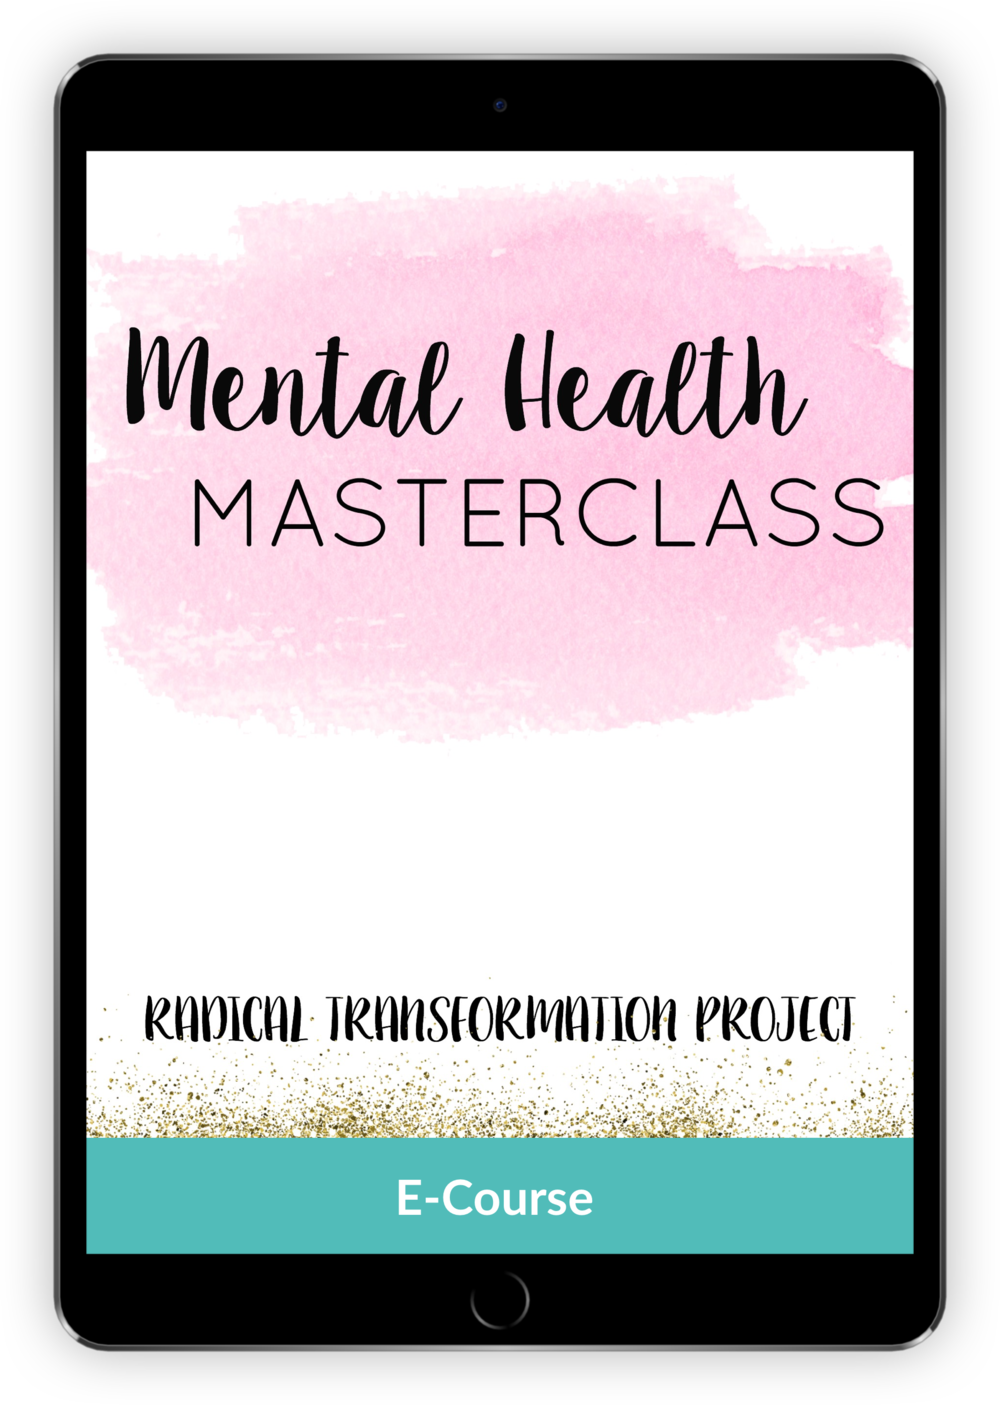 Mental Health Masterclass Mockup V2 - Copy.png